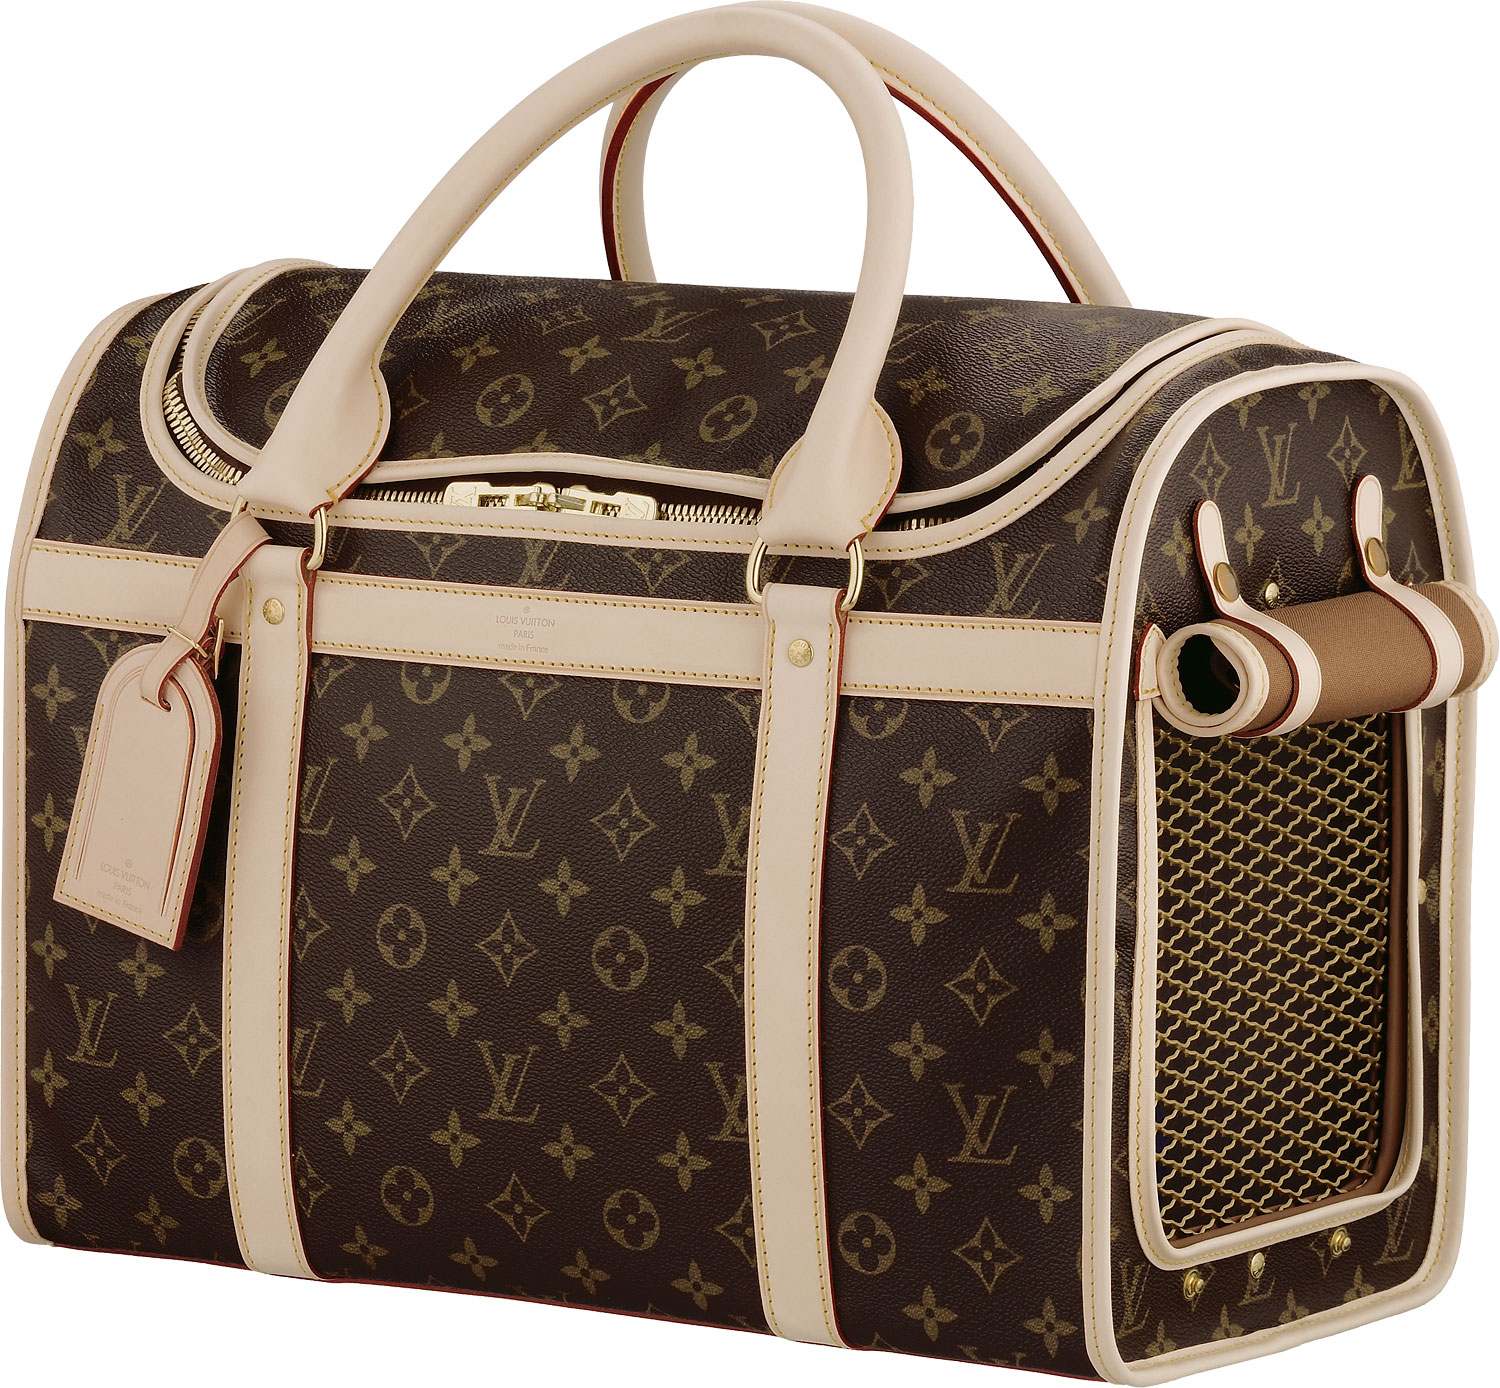 bag gloves images louis vuitton bag authentic. Black Bedroom Furniture Sets. Home Design Ideas